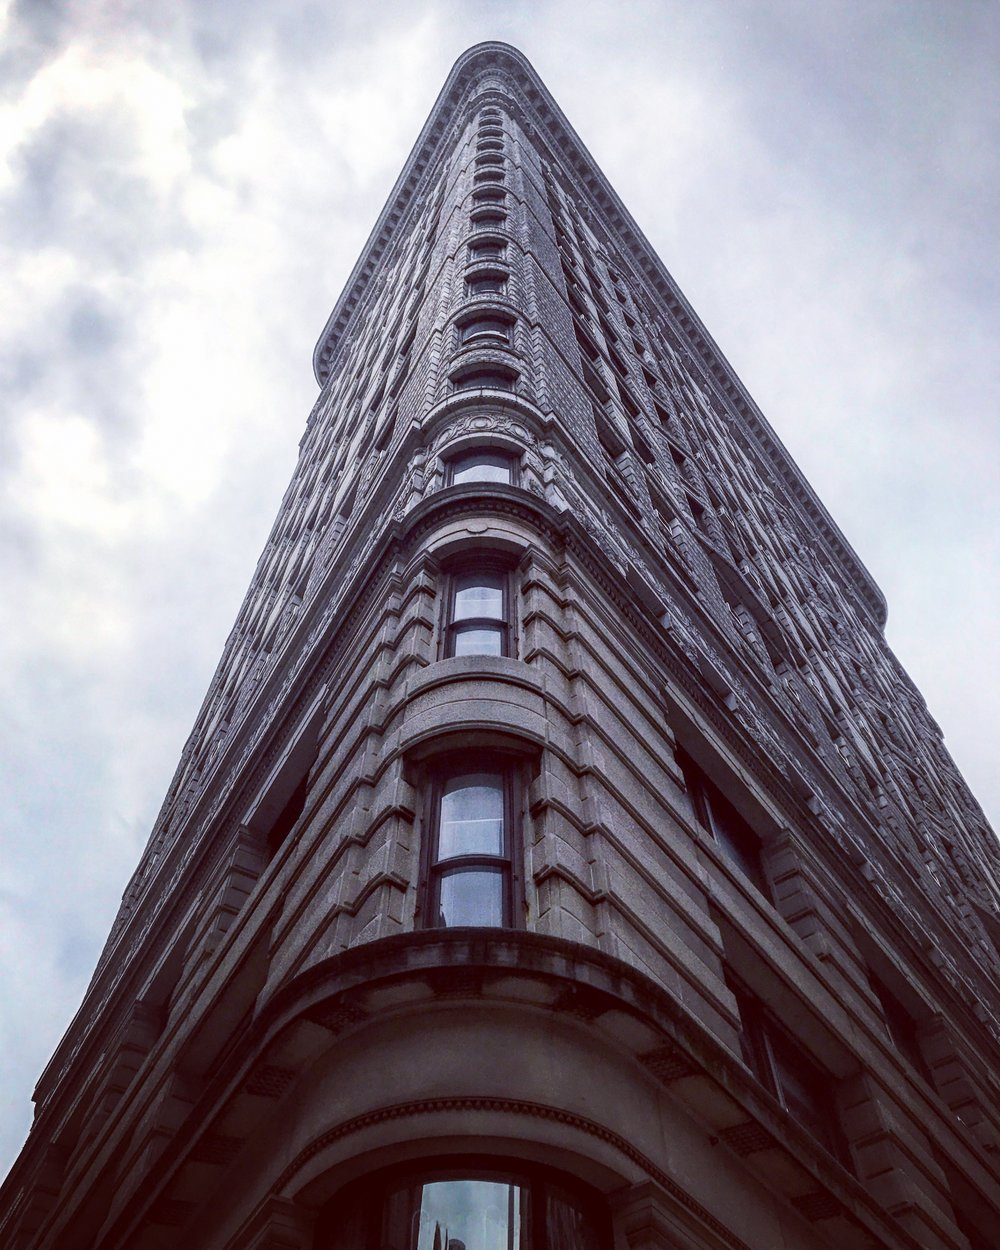 The beautiful and historic Flatiron Building.